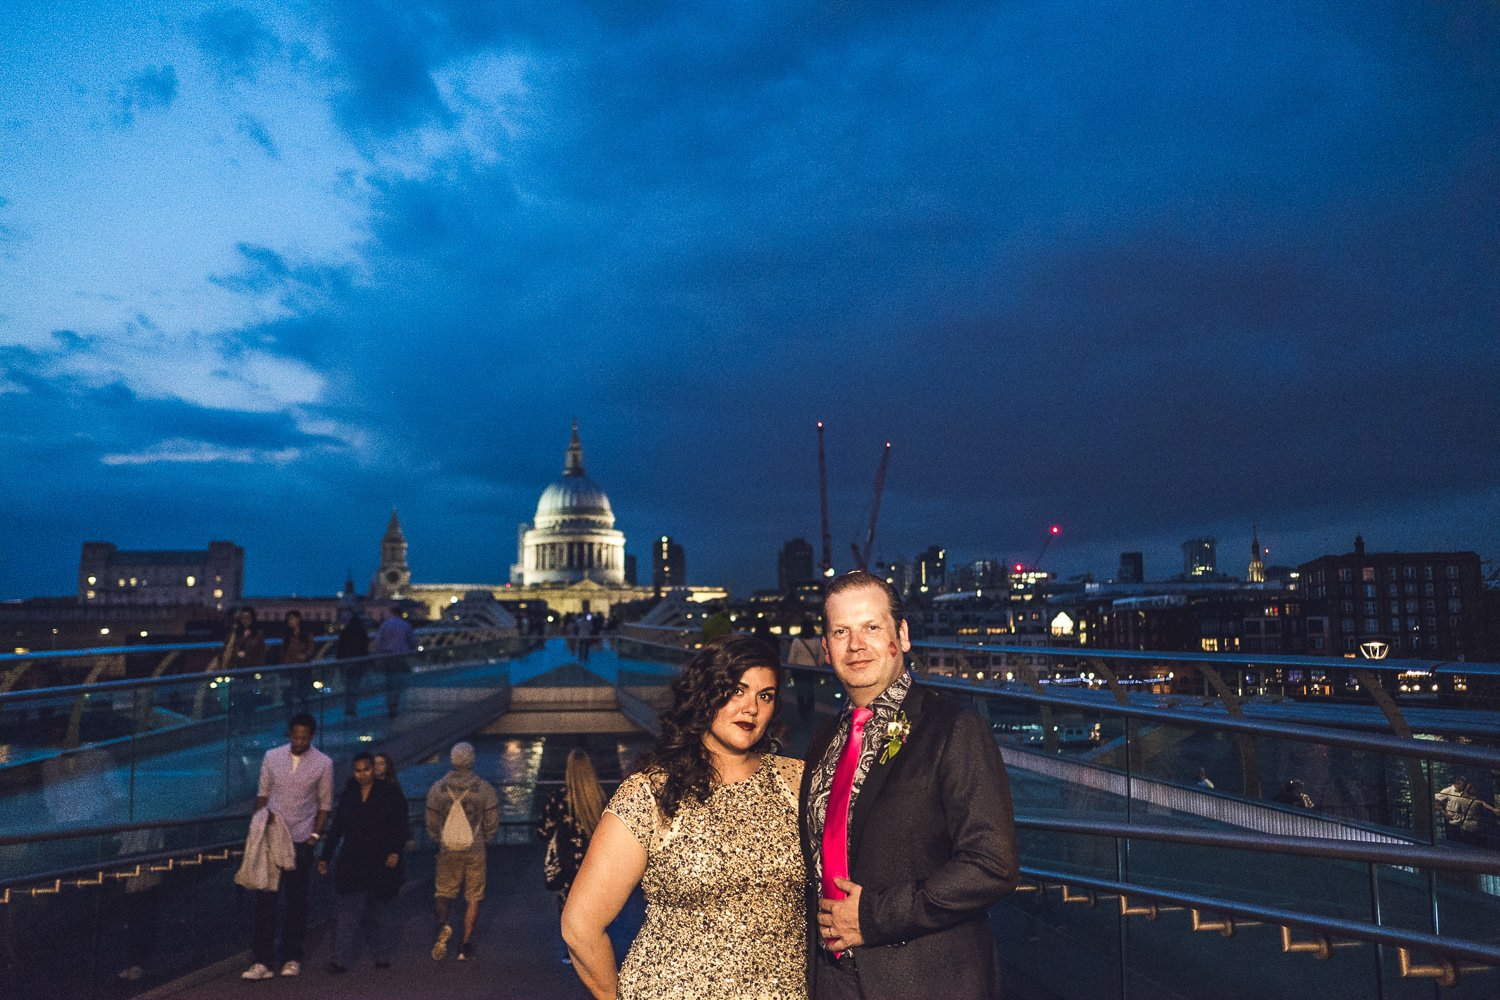 Couple at night in front of St Pauls bankside wedding